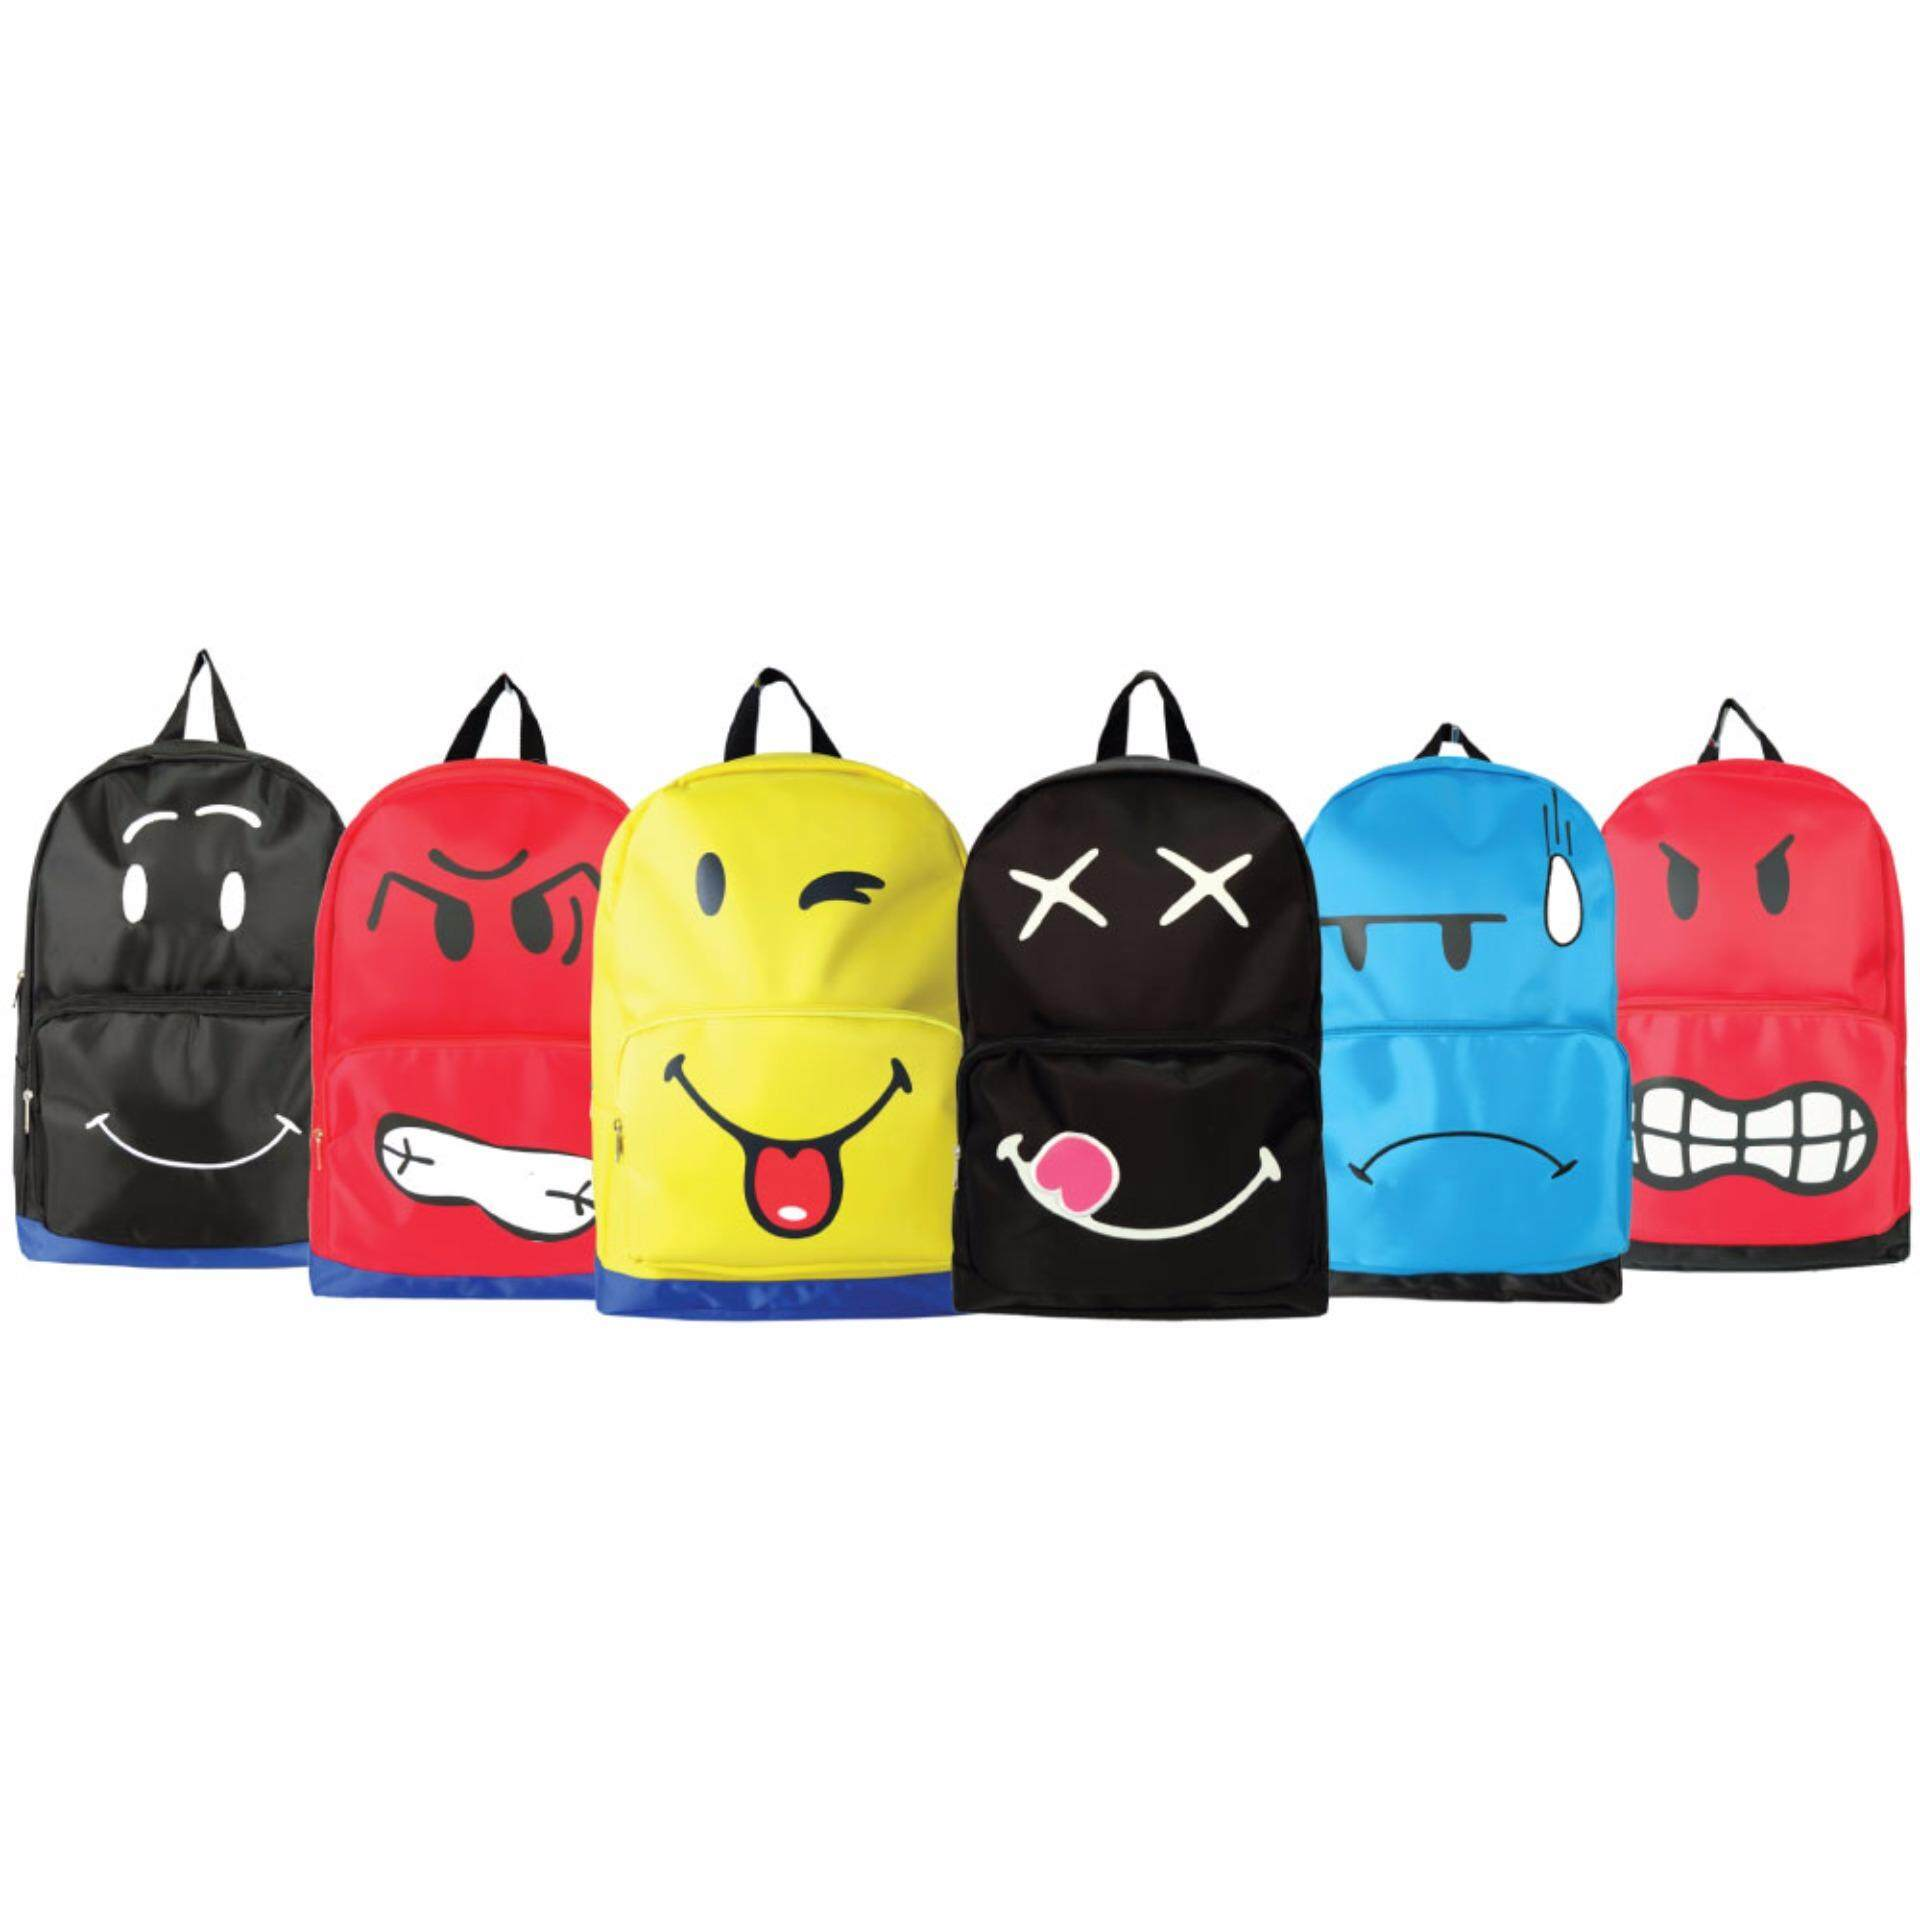 Smiley SS1641 18 Inch Emojis Backpack